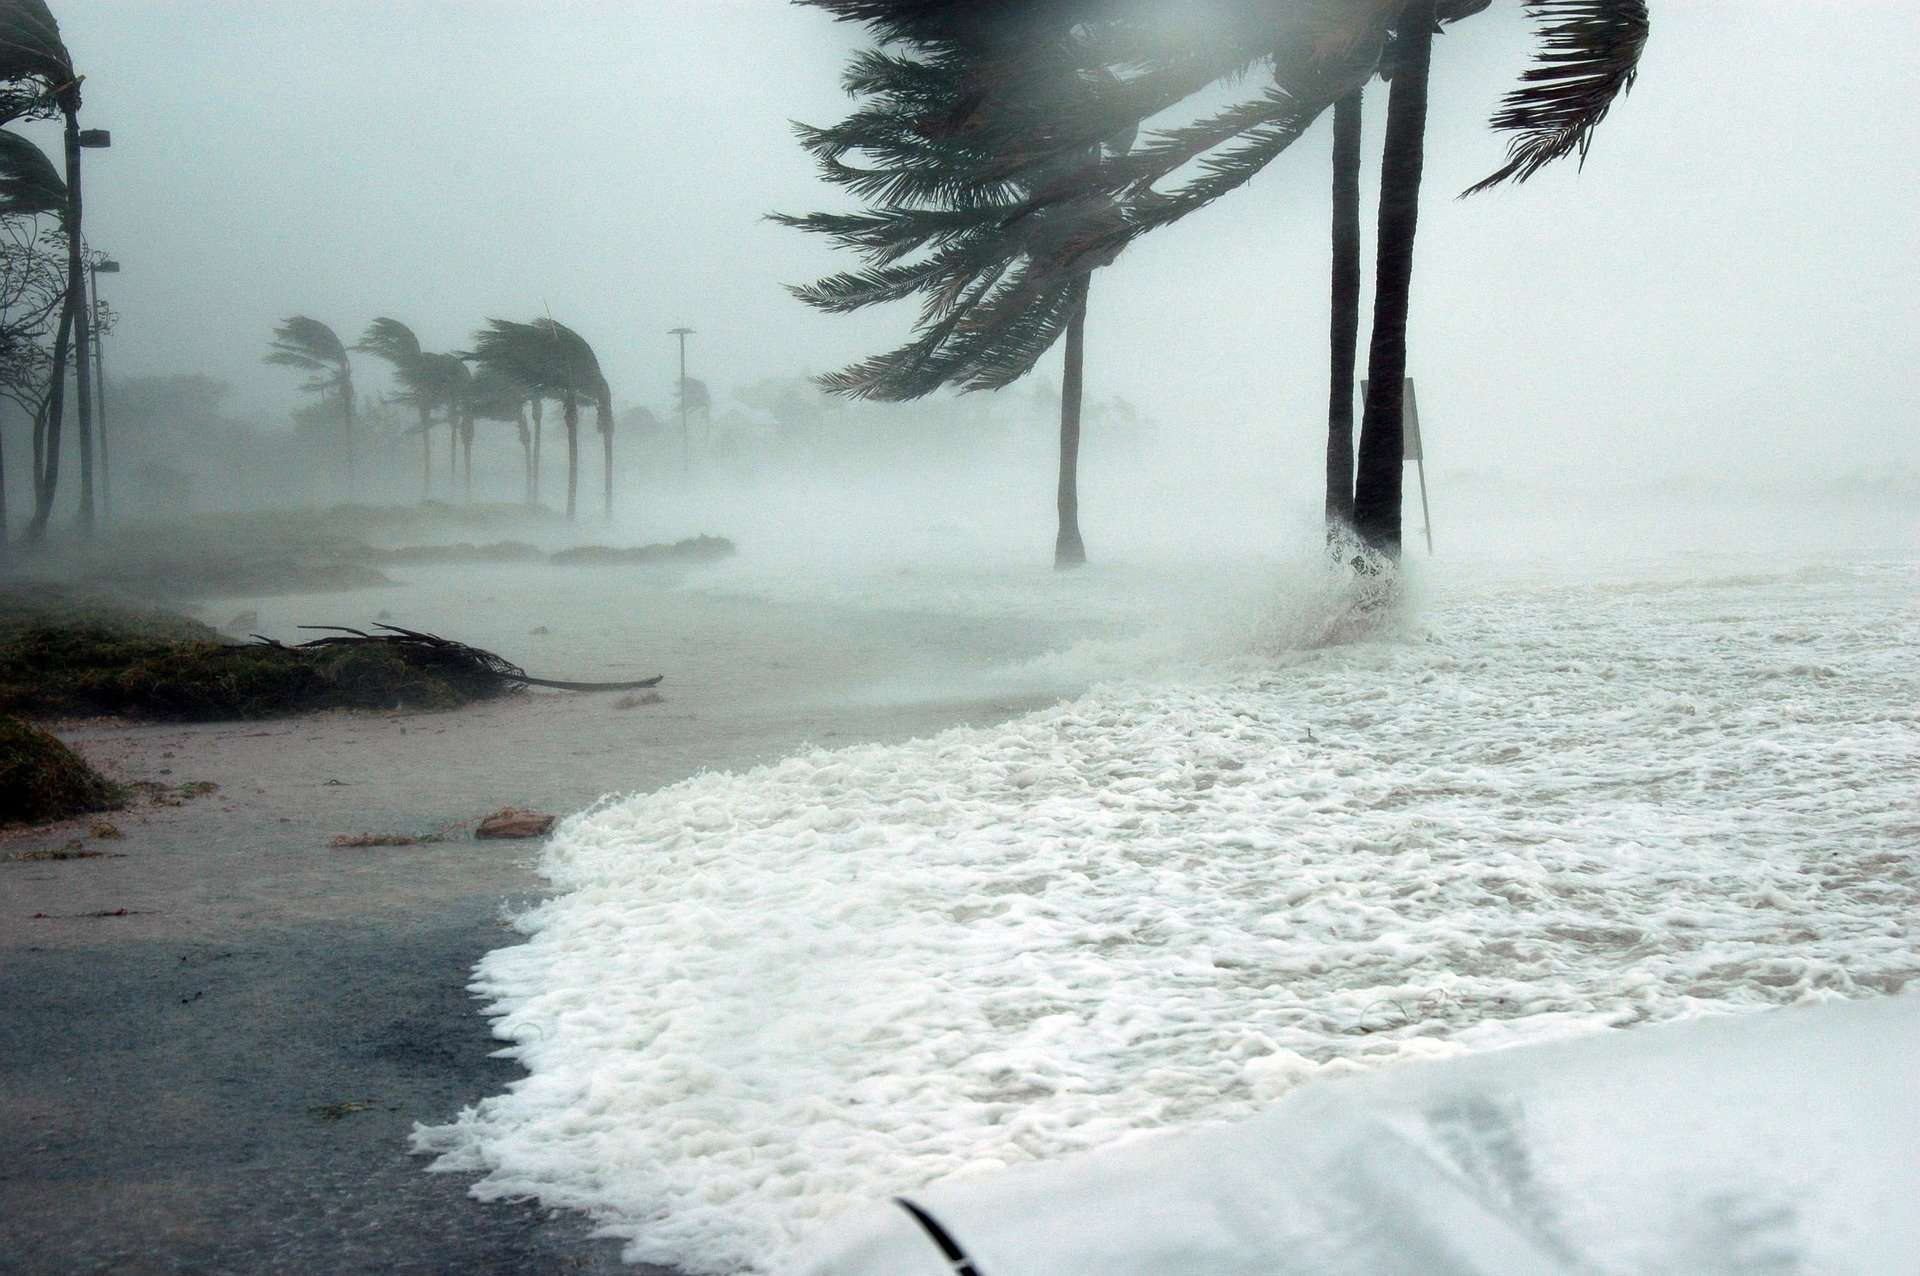 Traveling during a Hurricane? What to Expect and How to Prepare